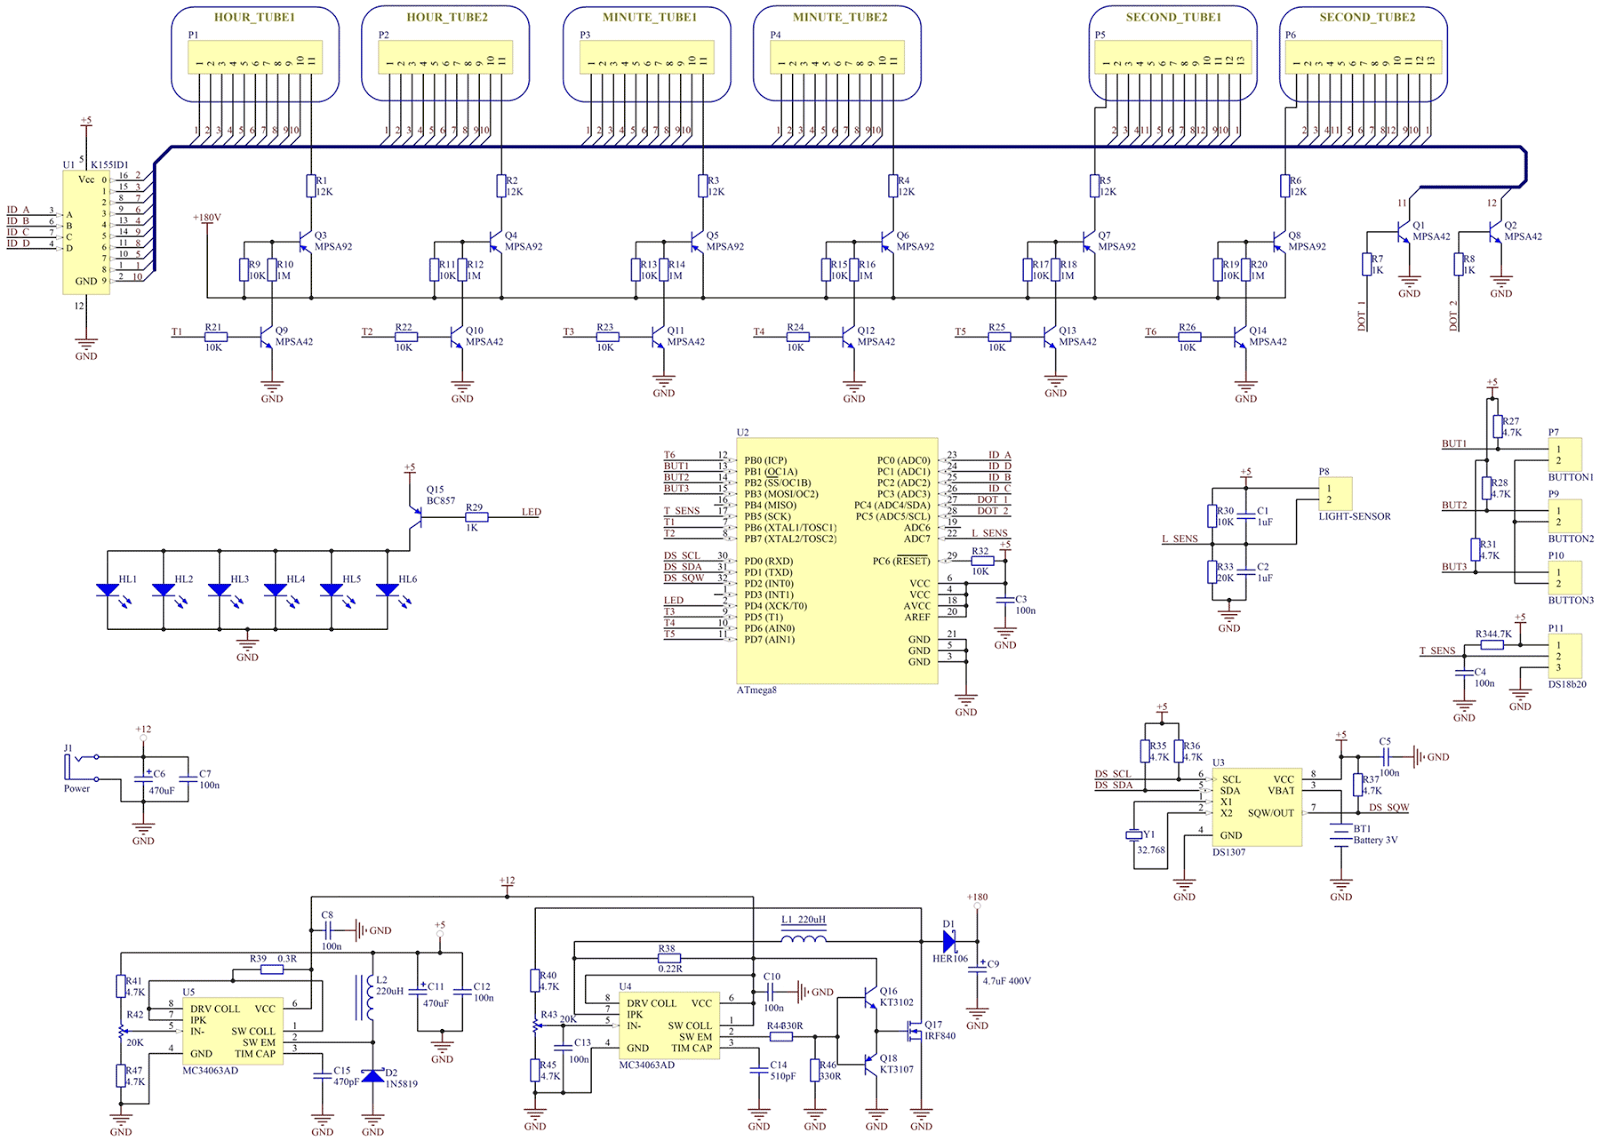 Schematic And Working Principle Evgeniybelov Dlc Wiki Github Nixie Clock Circuit Diagrams For This Reason I Wanted To Use Only One In My Project While There Are Many Projects Which Uses Driver Each Digit